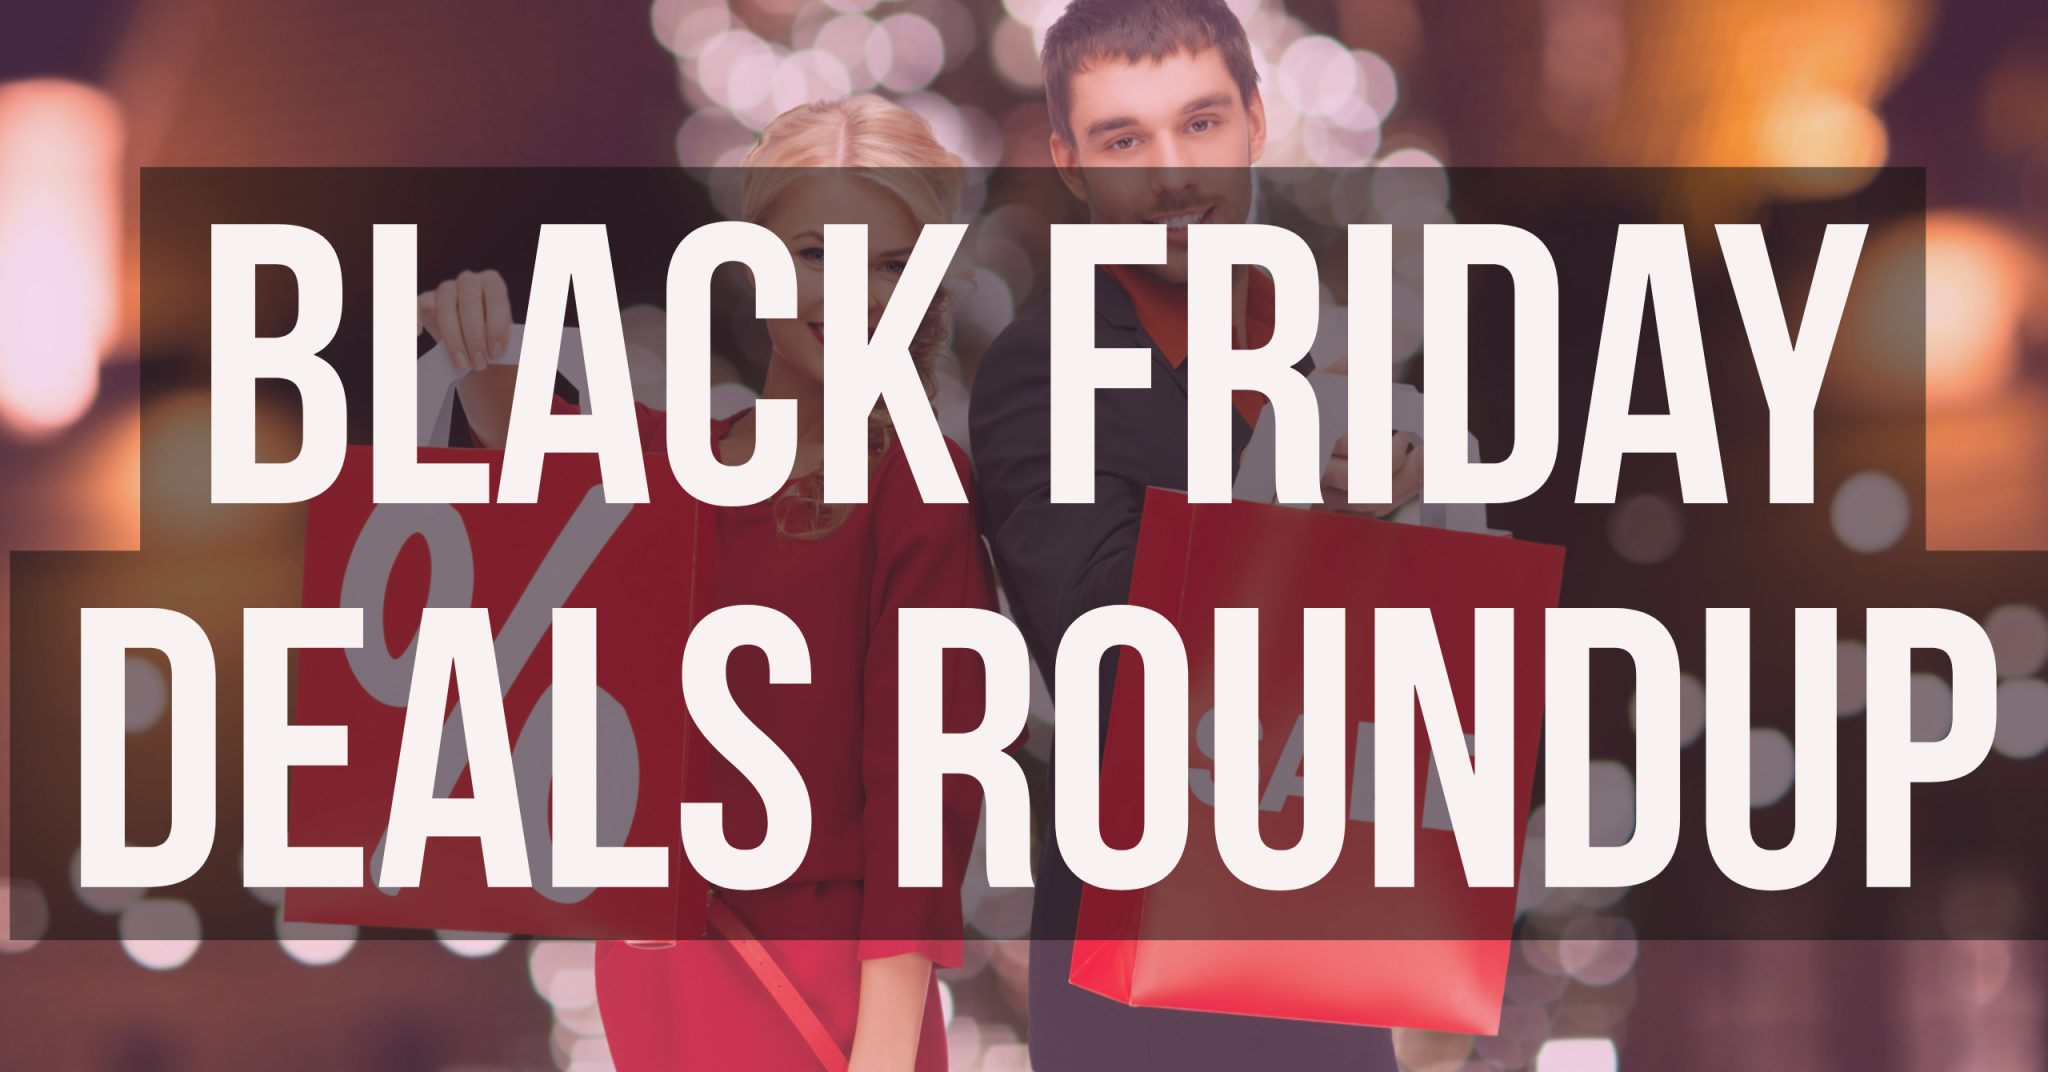 Black Friday Deals Roundup